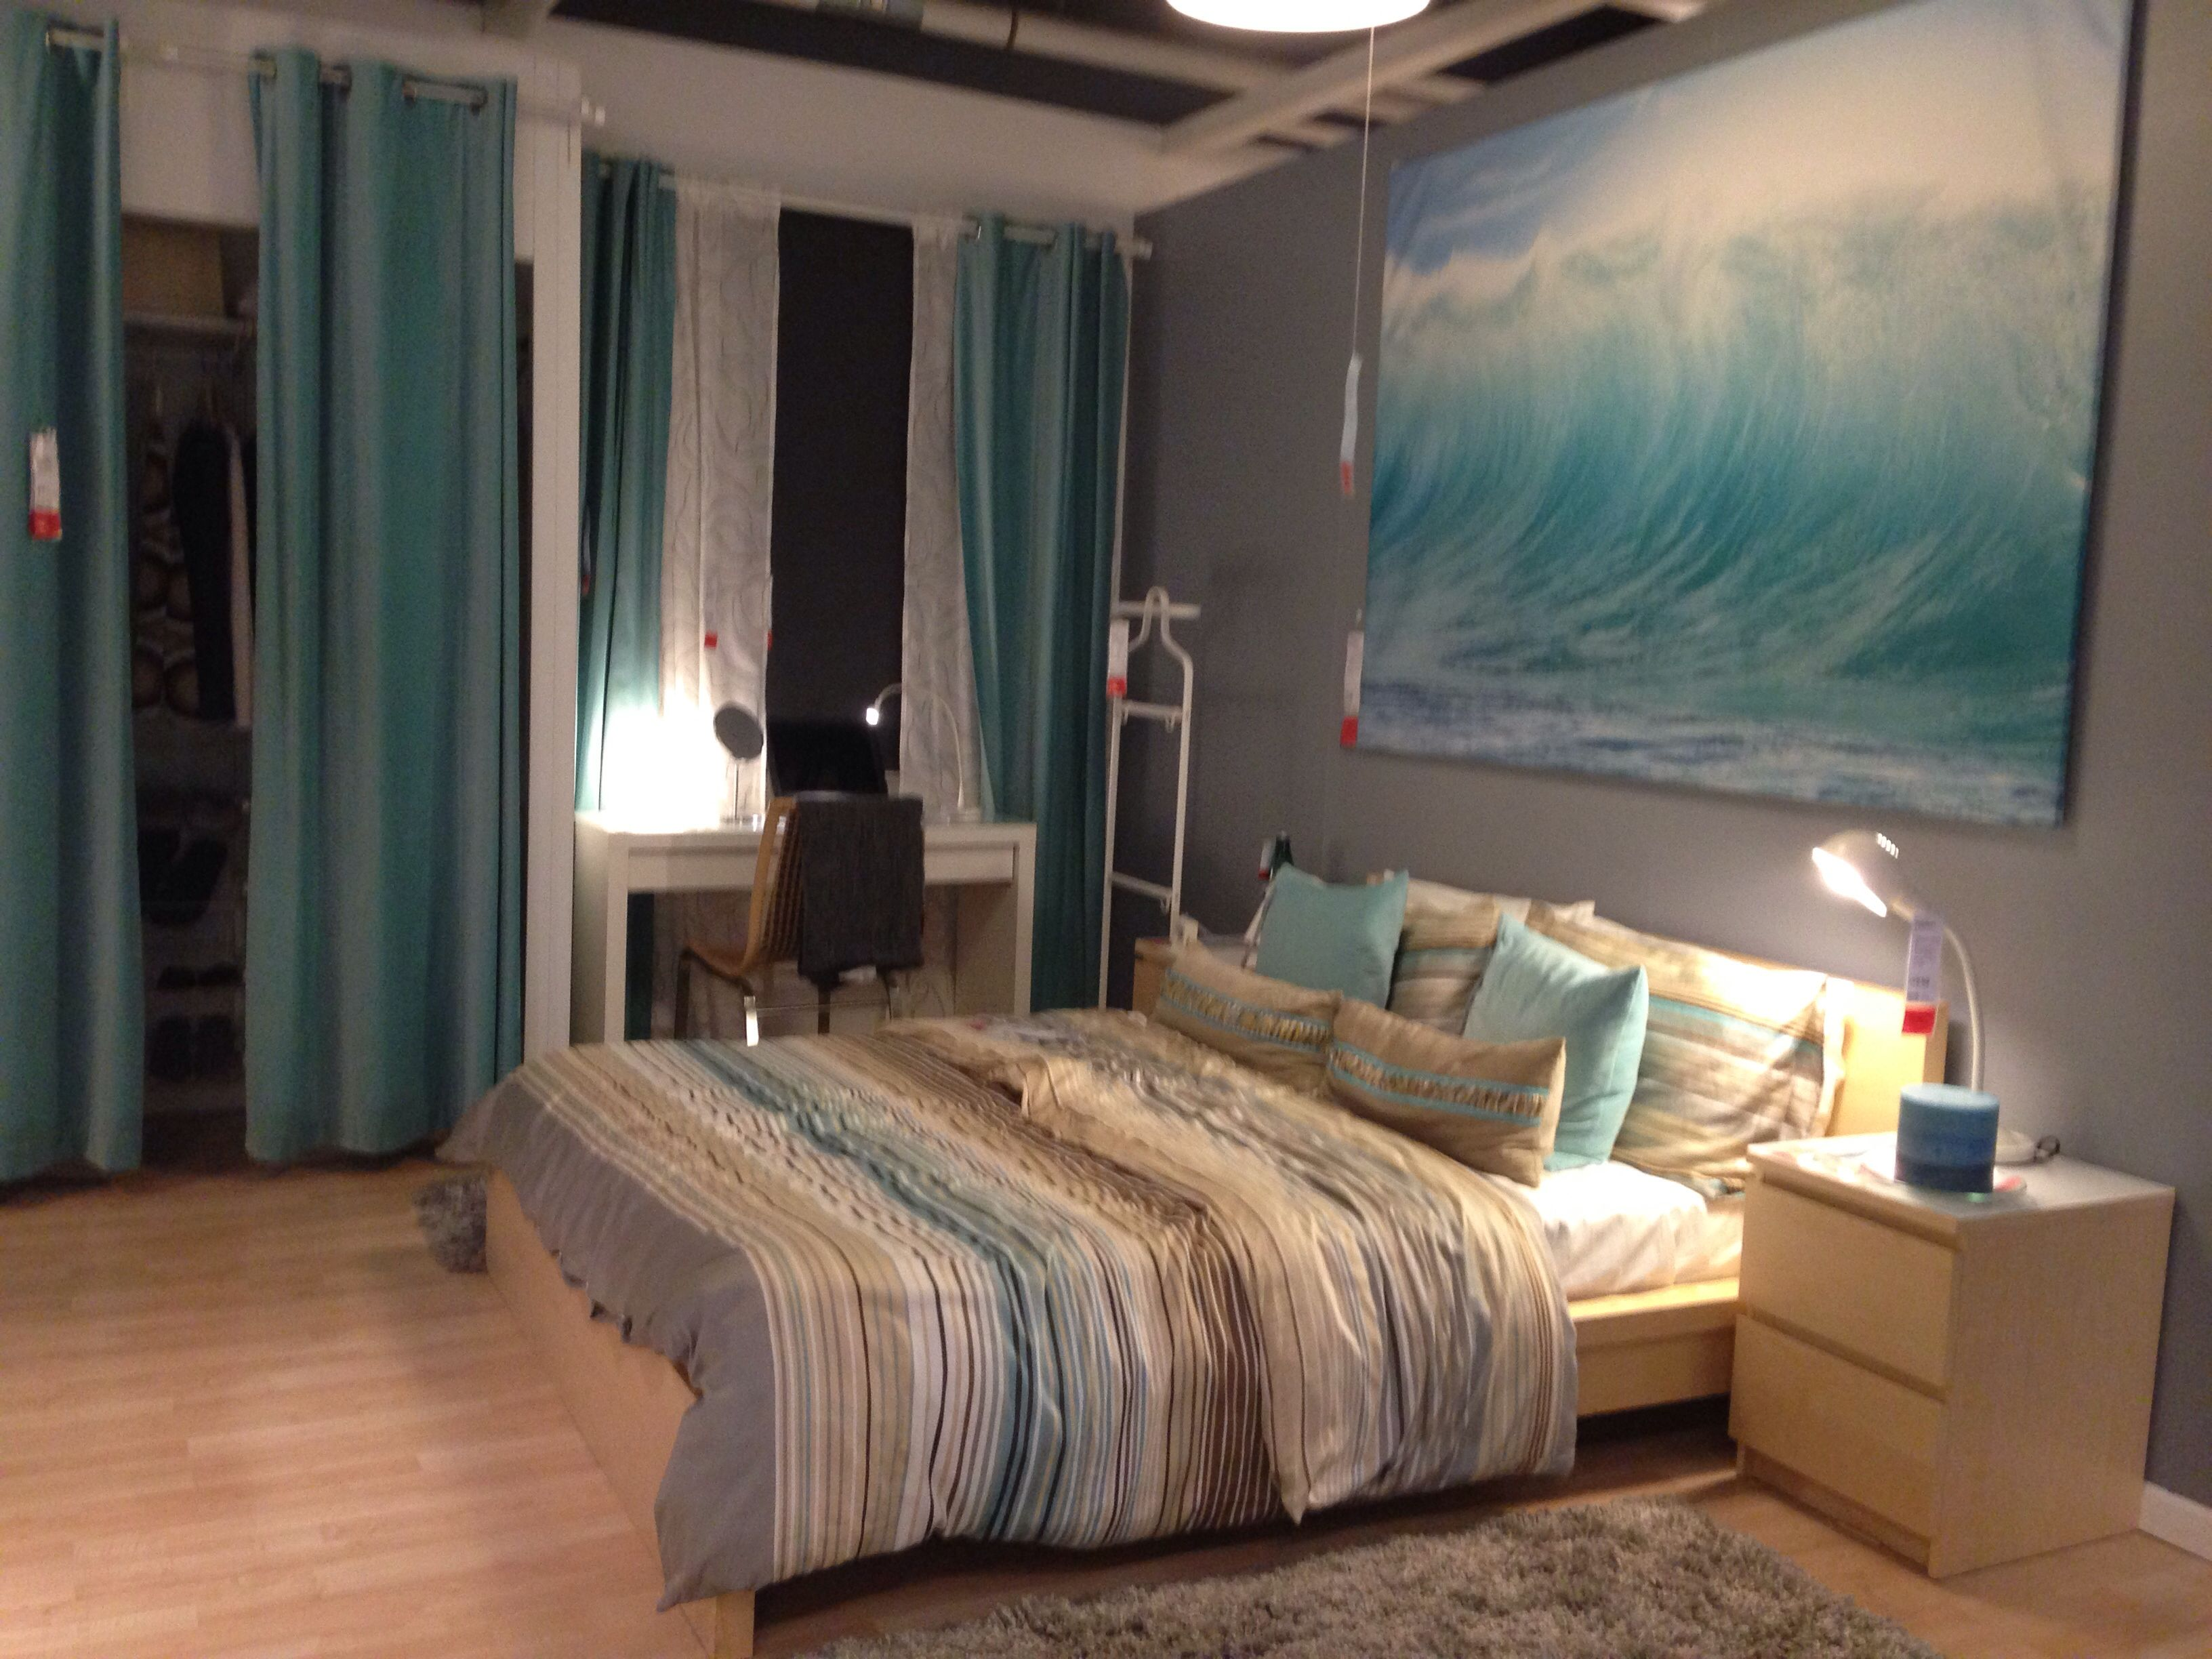 Beach Themed Bedroom Everything Is Sold At IKEA Love It - Beach themed bedroom ideas pinterest